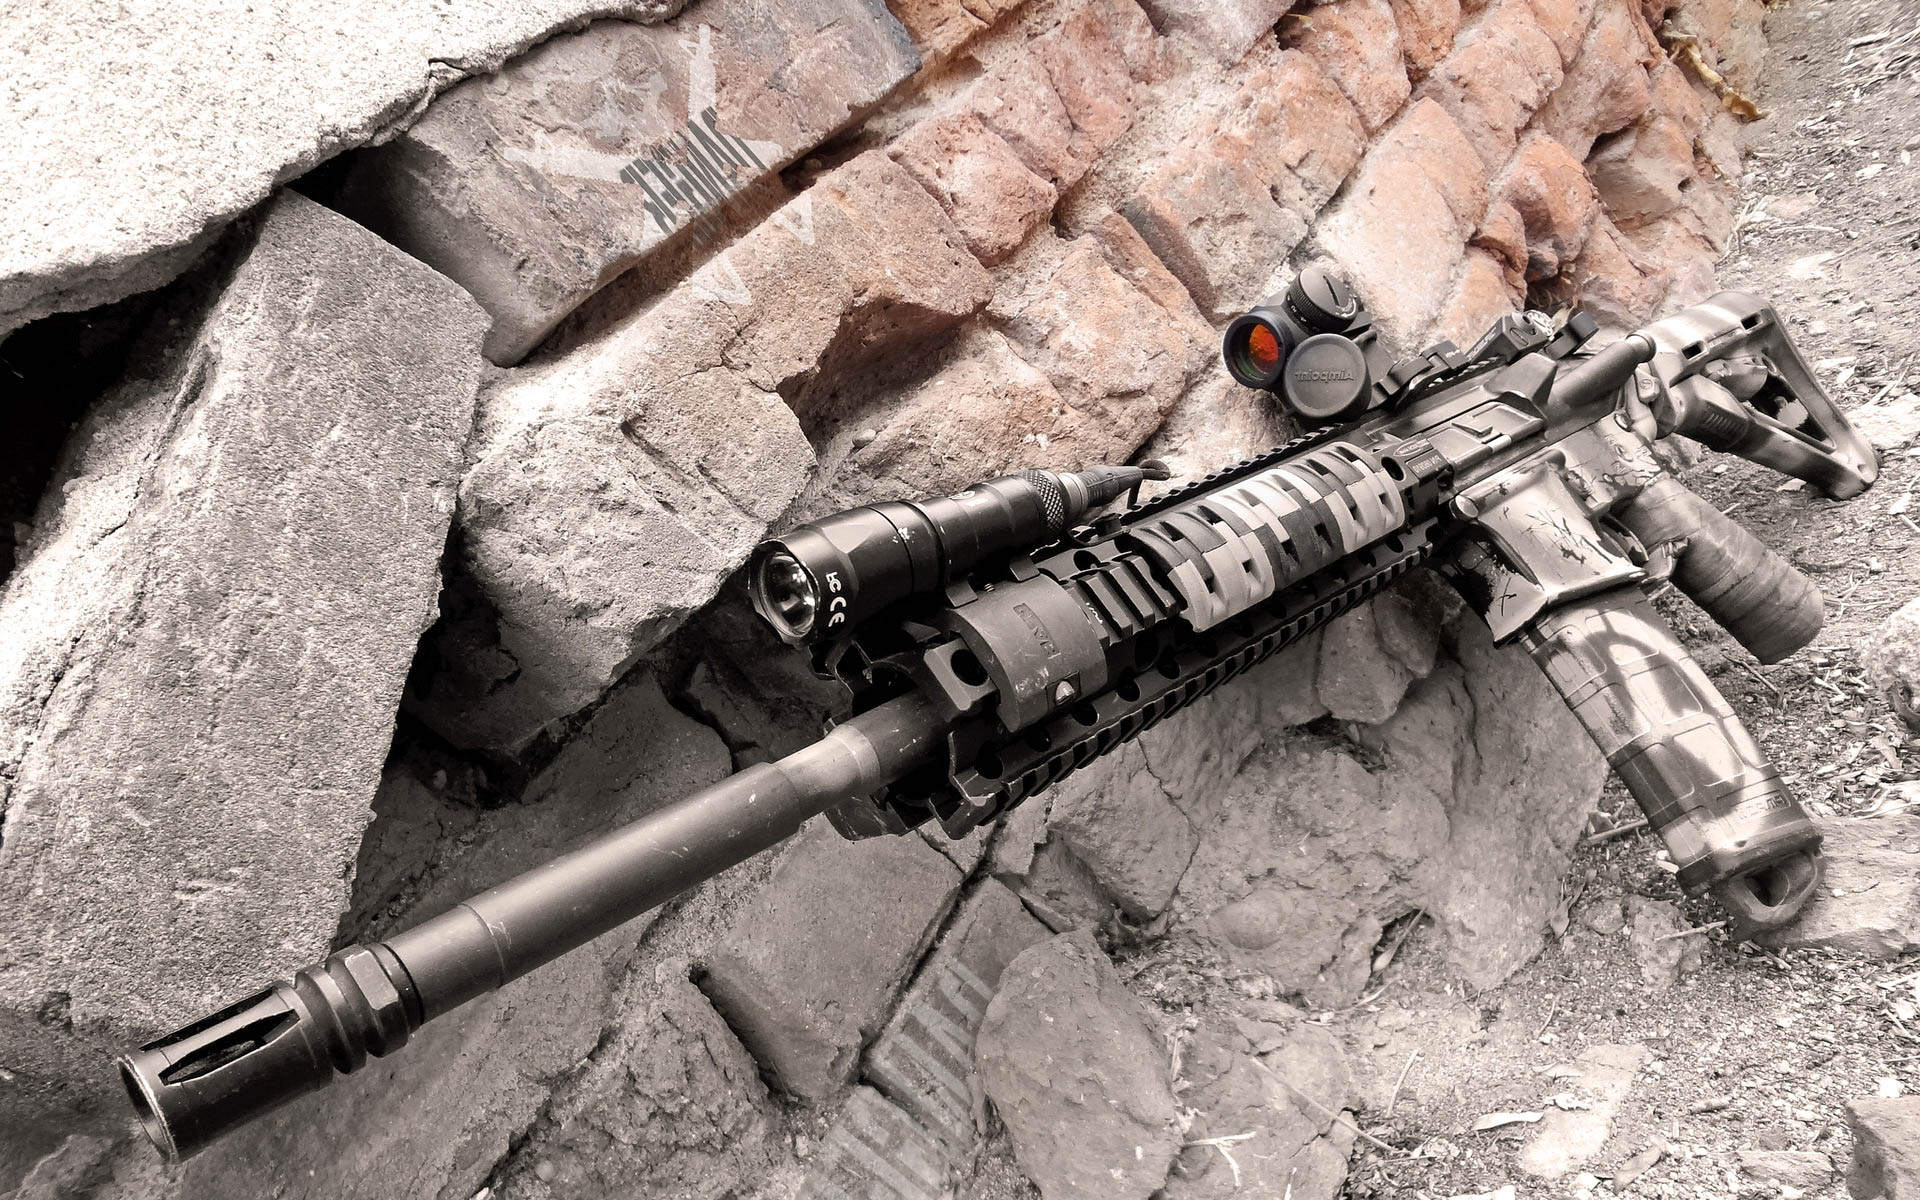 AR-15 Weapon Some Amazing HD Wallpapers, Backgrounds (High